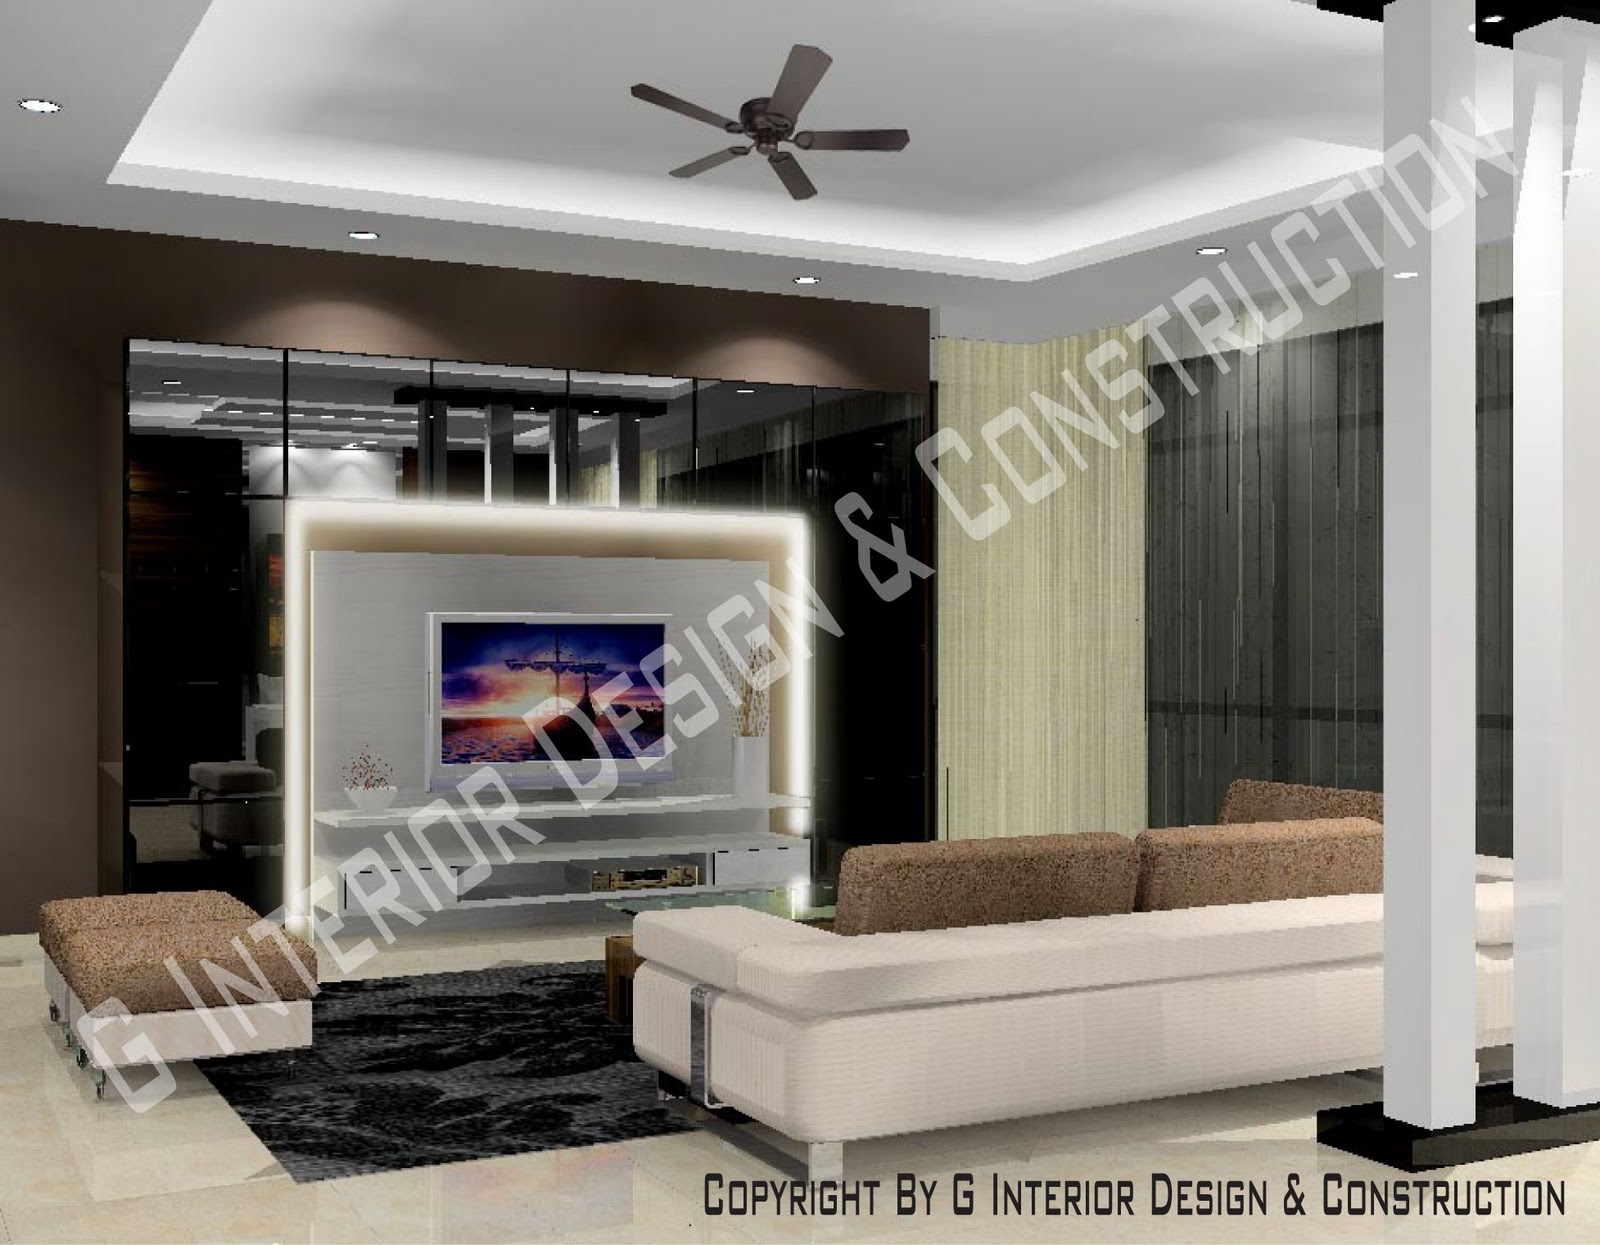 House Hall Interior Design - [audidatlevante.com]